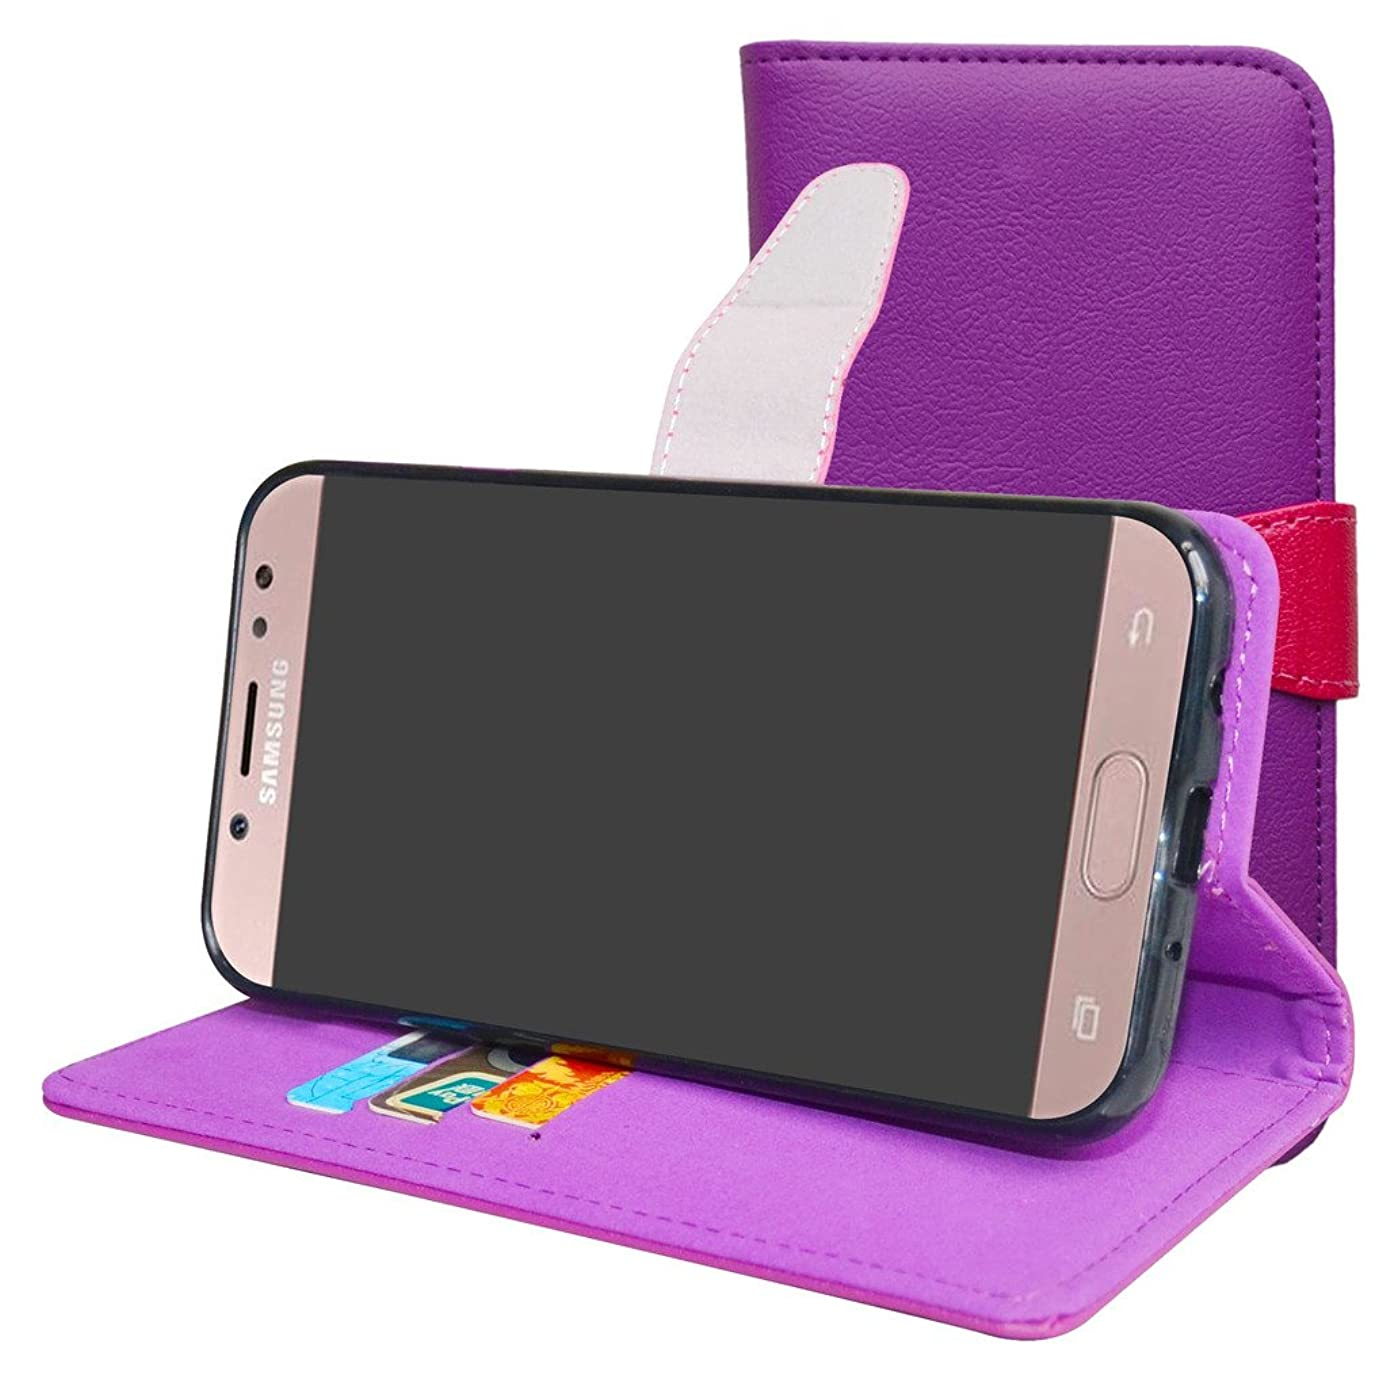 Galaxy J7 Pro J730G Case,Mama Mouth [Stand View] Premium PU Leather [Wallet Case] with Card Slots Cover for Samsung Galaxy J7 Pro J730G 2017 Smartphone,Purple